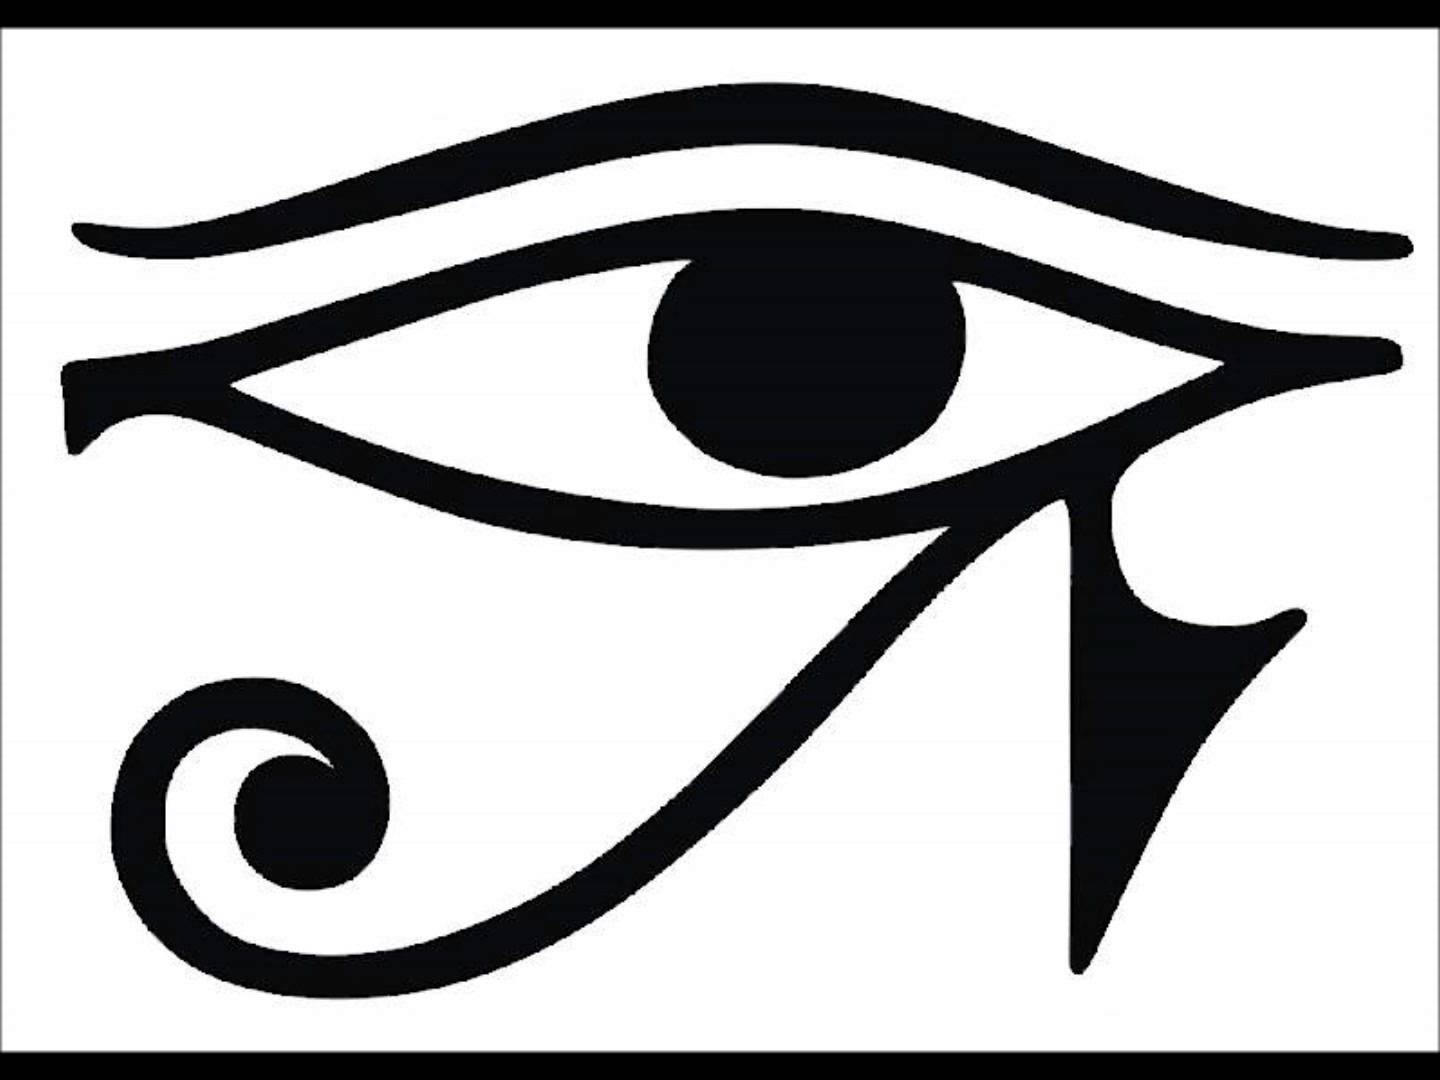 1440x1080 A Watchman's Revelation Part Symbols The All Seeing Eye Pyramid